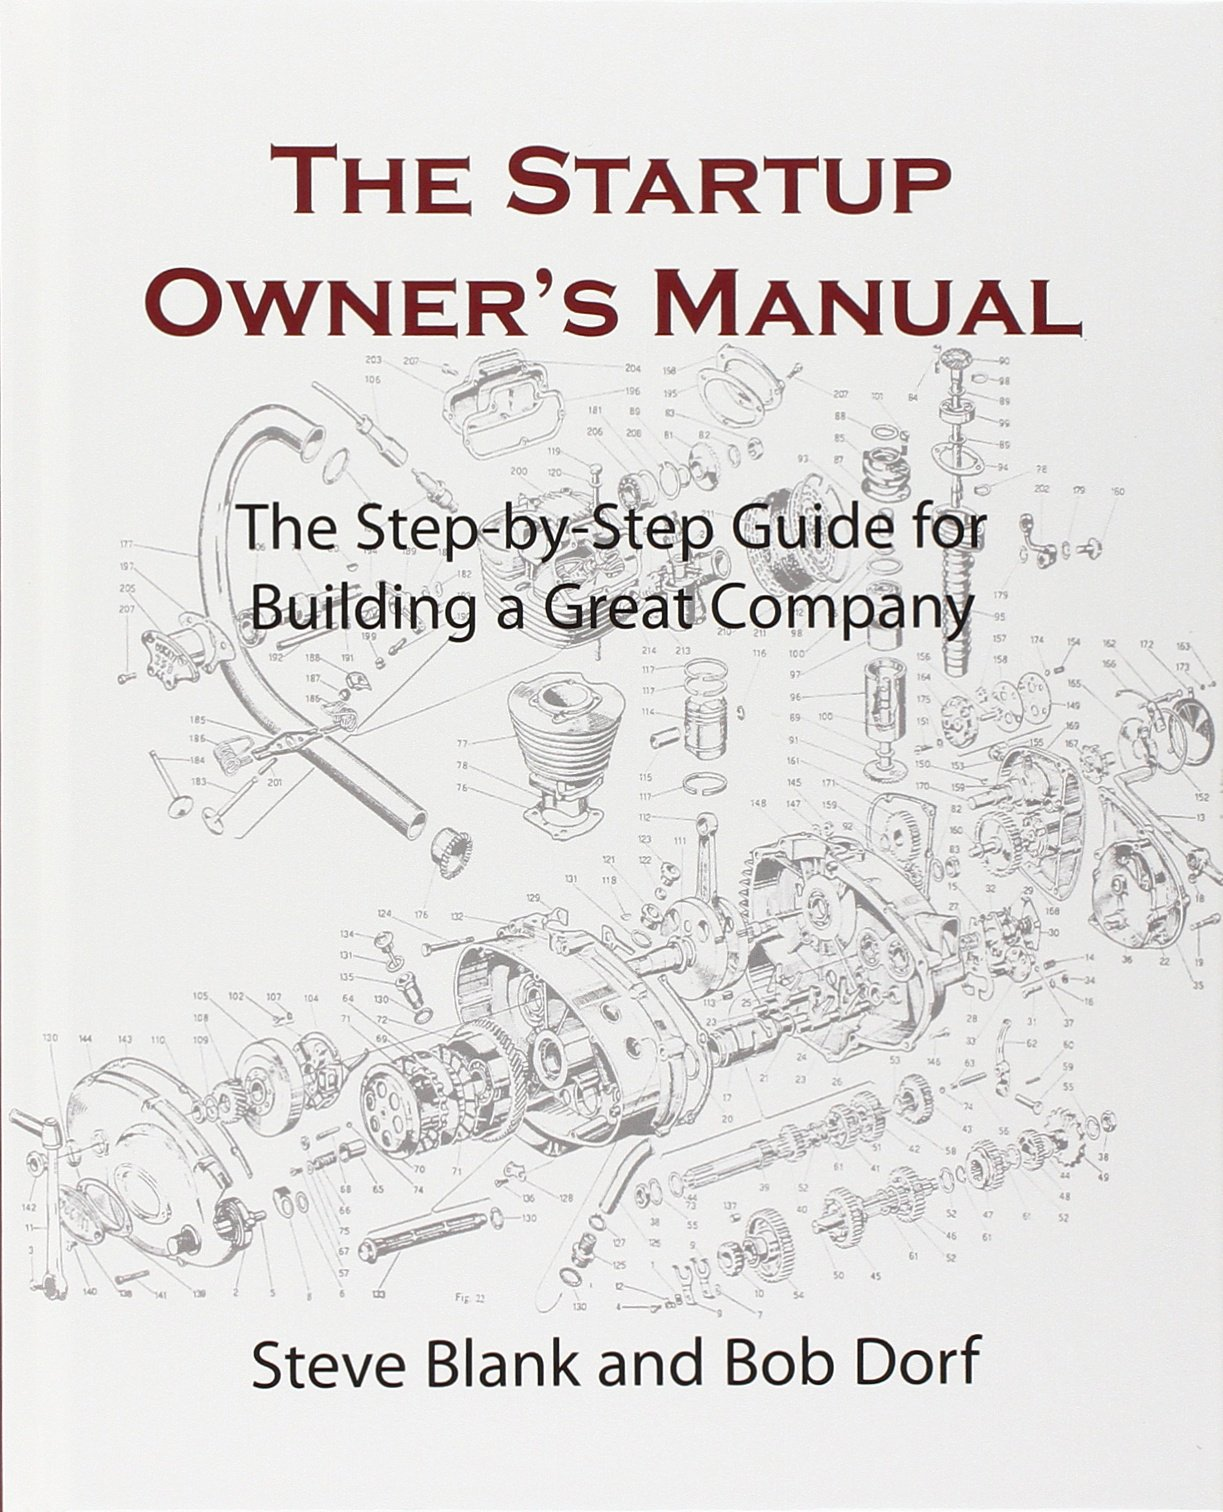 The Startup Owner's Manual Book Cover